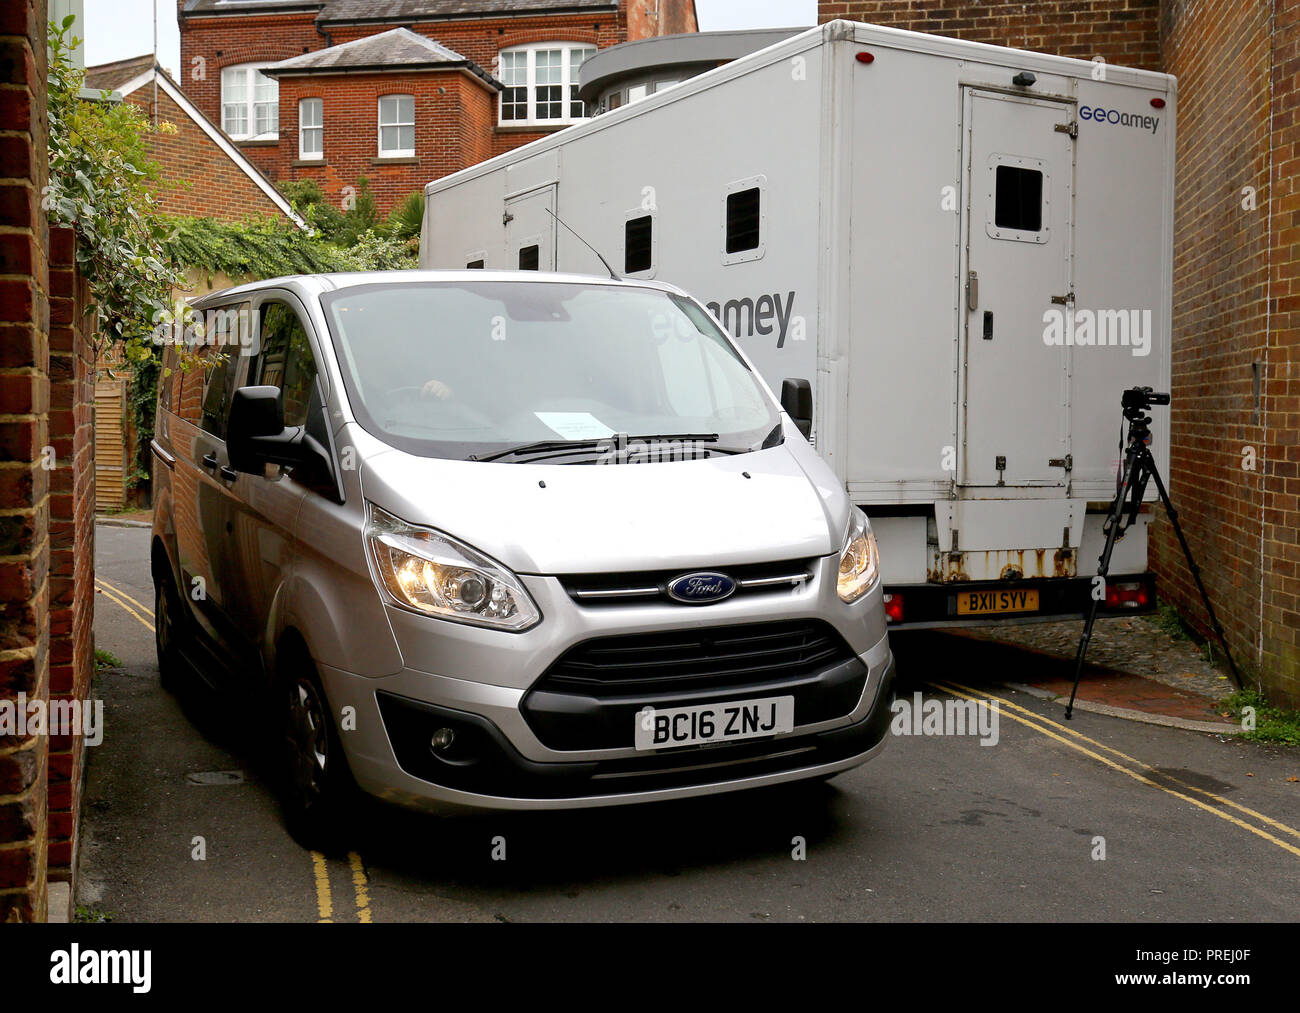 A van carrying Thomas Fisher, 22, arrives at Lewes Crown Court, East Sussex, where he will enter a plea for the alleged murder of his mother, Fiona Fisher, 51, who was found dead at her Crowborough home on April 27. - Stock Image